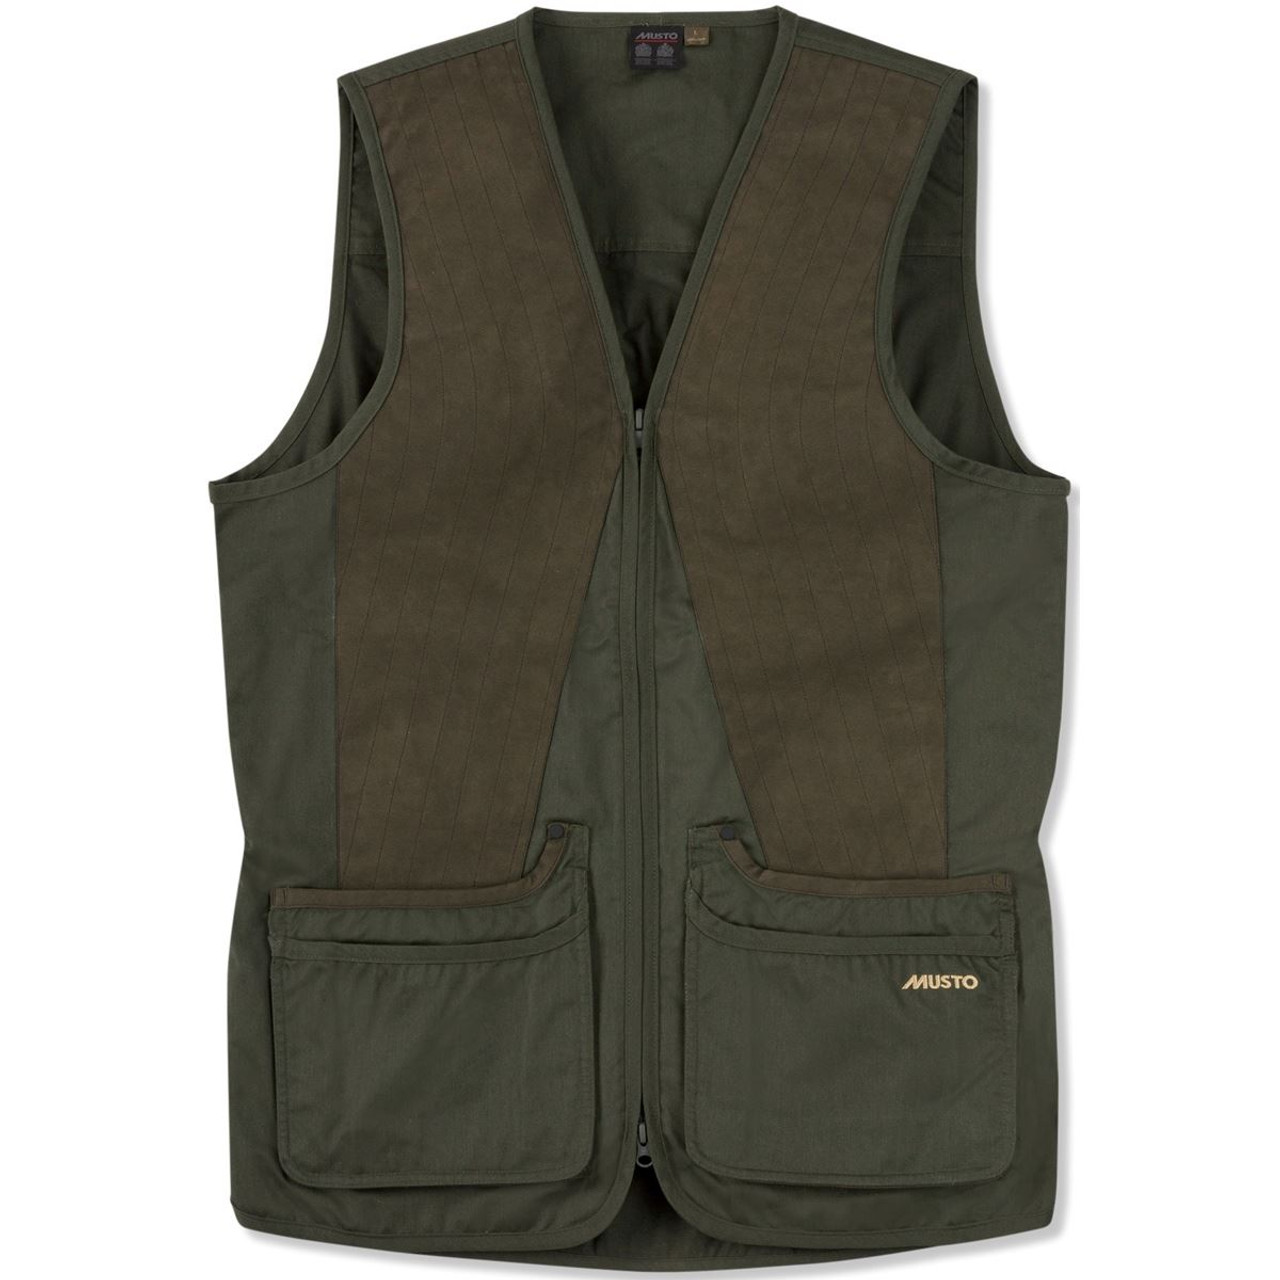 Musto Clay Shooting Vest - Vineyard